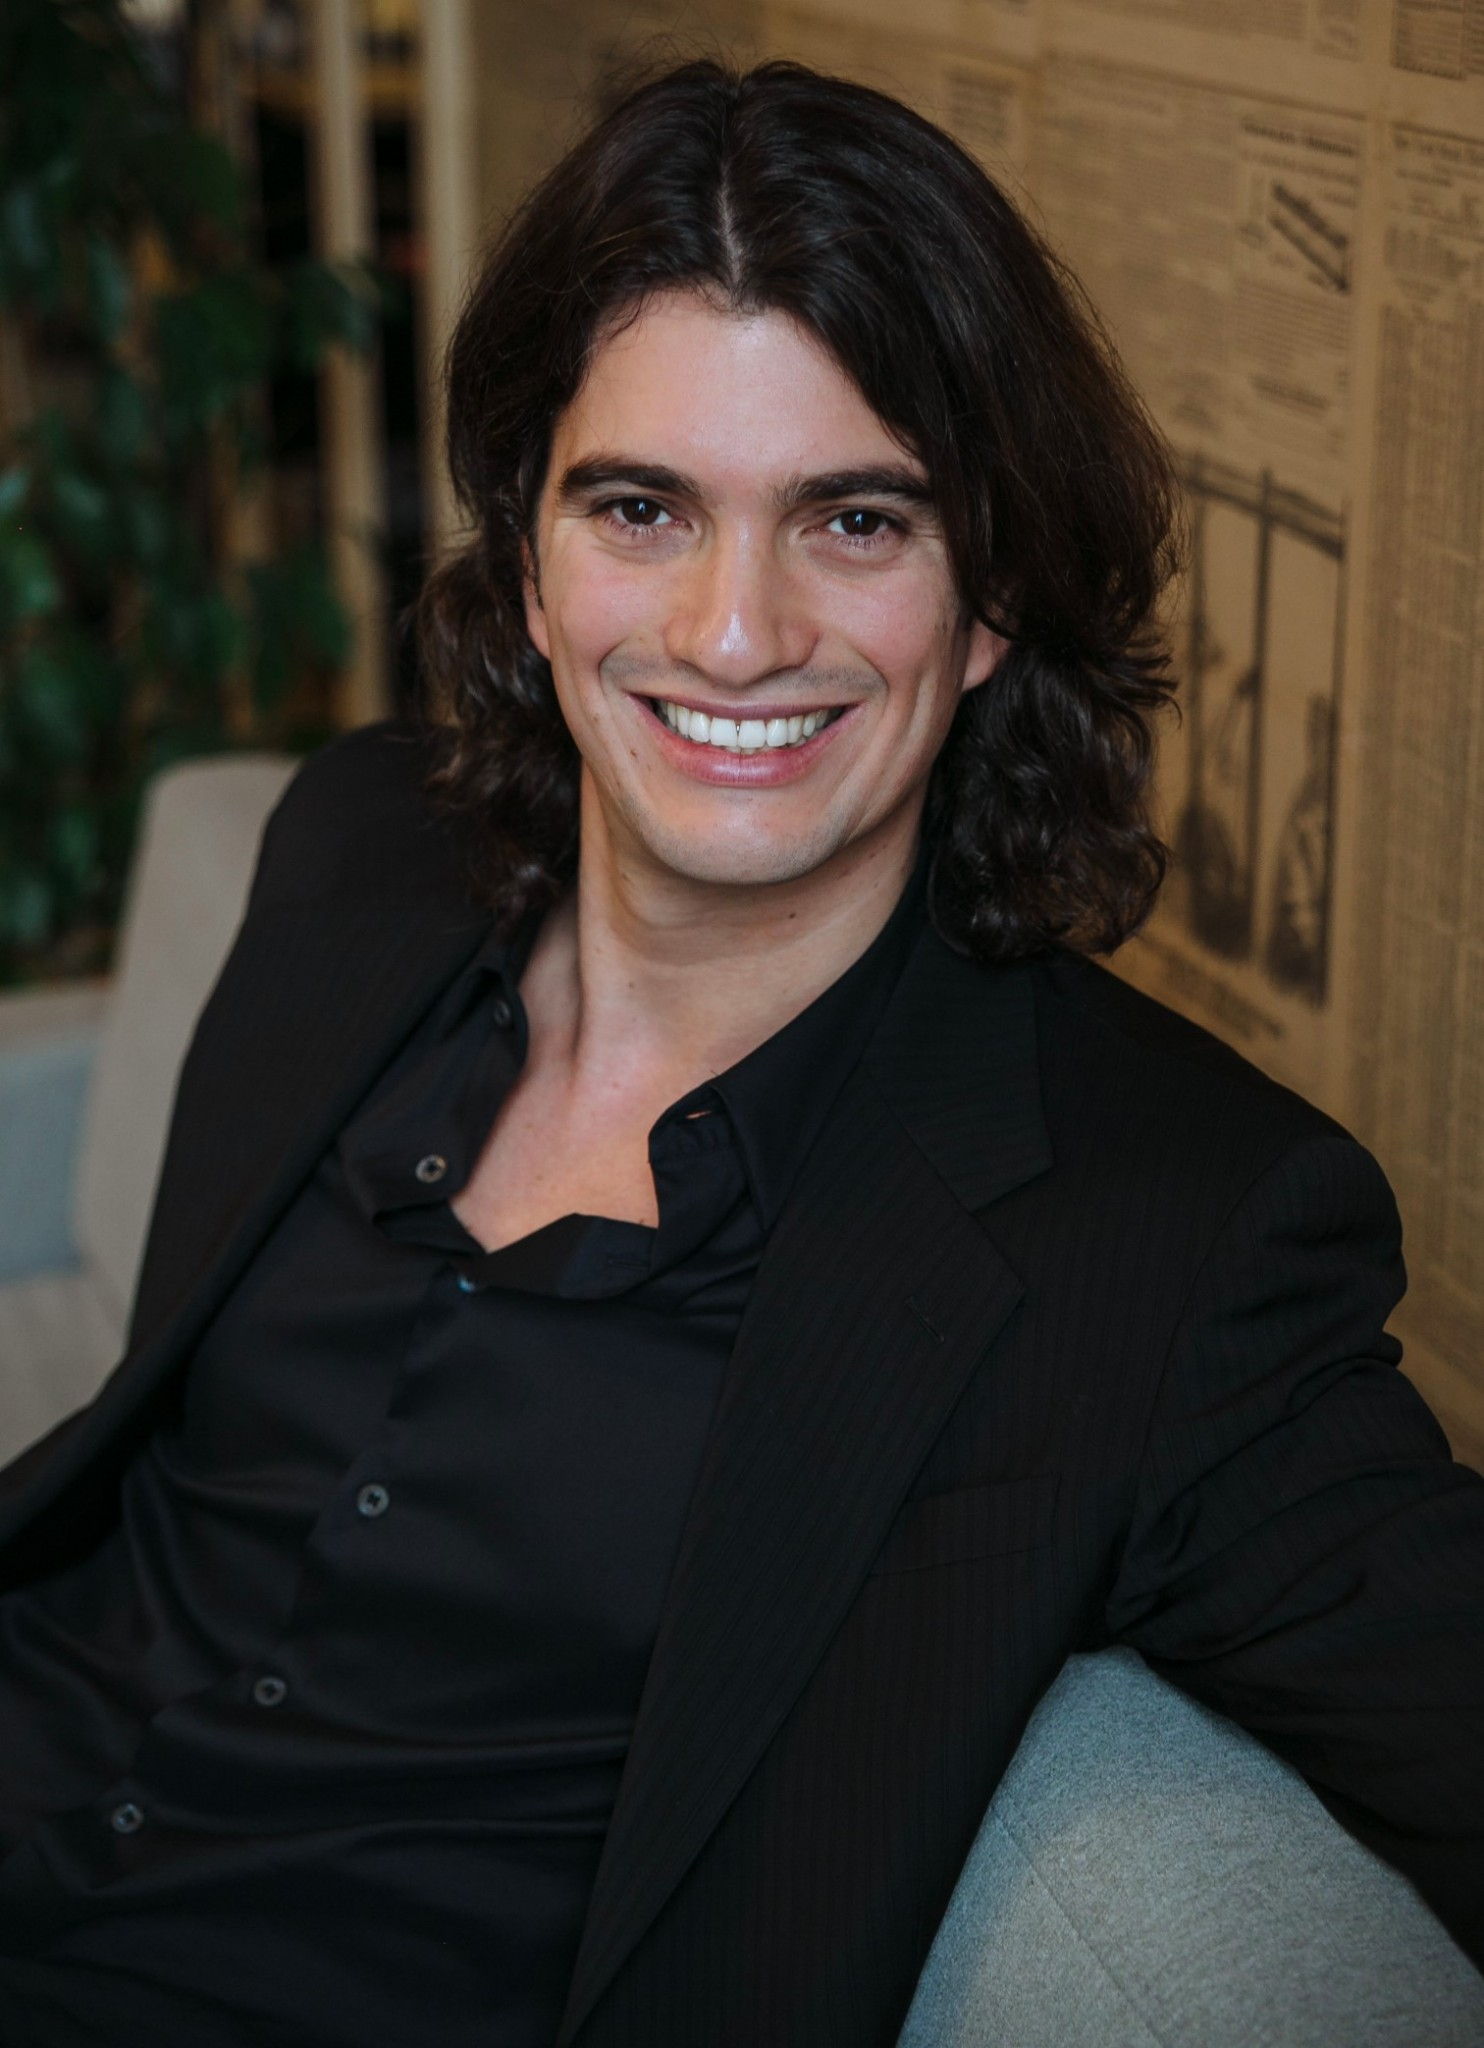 Adam Neumann, cofounder and CEO of WeWork. Photo: courtesy